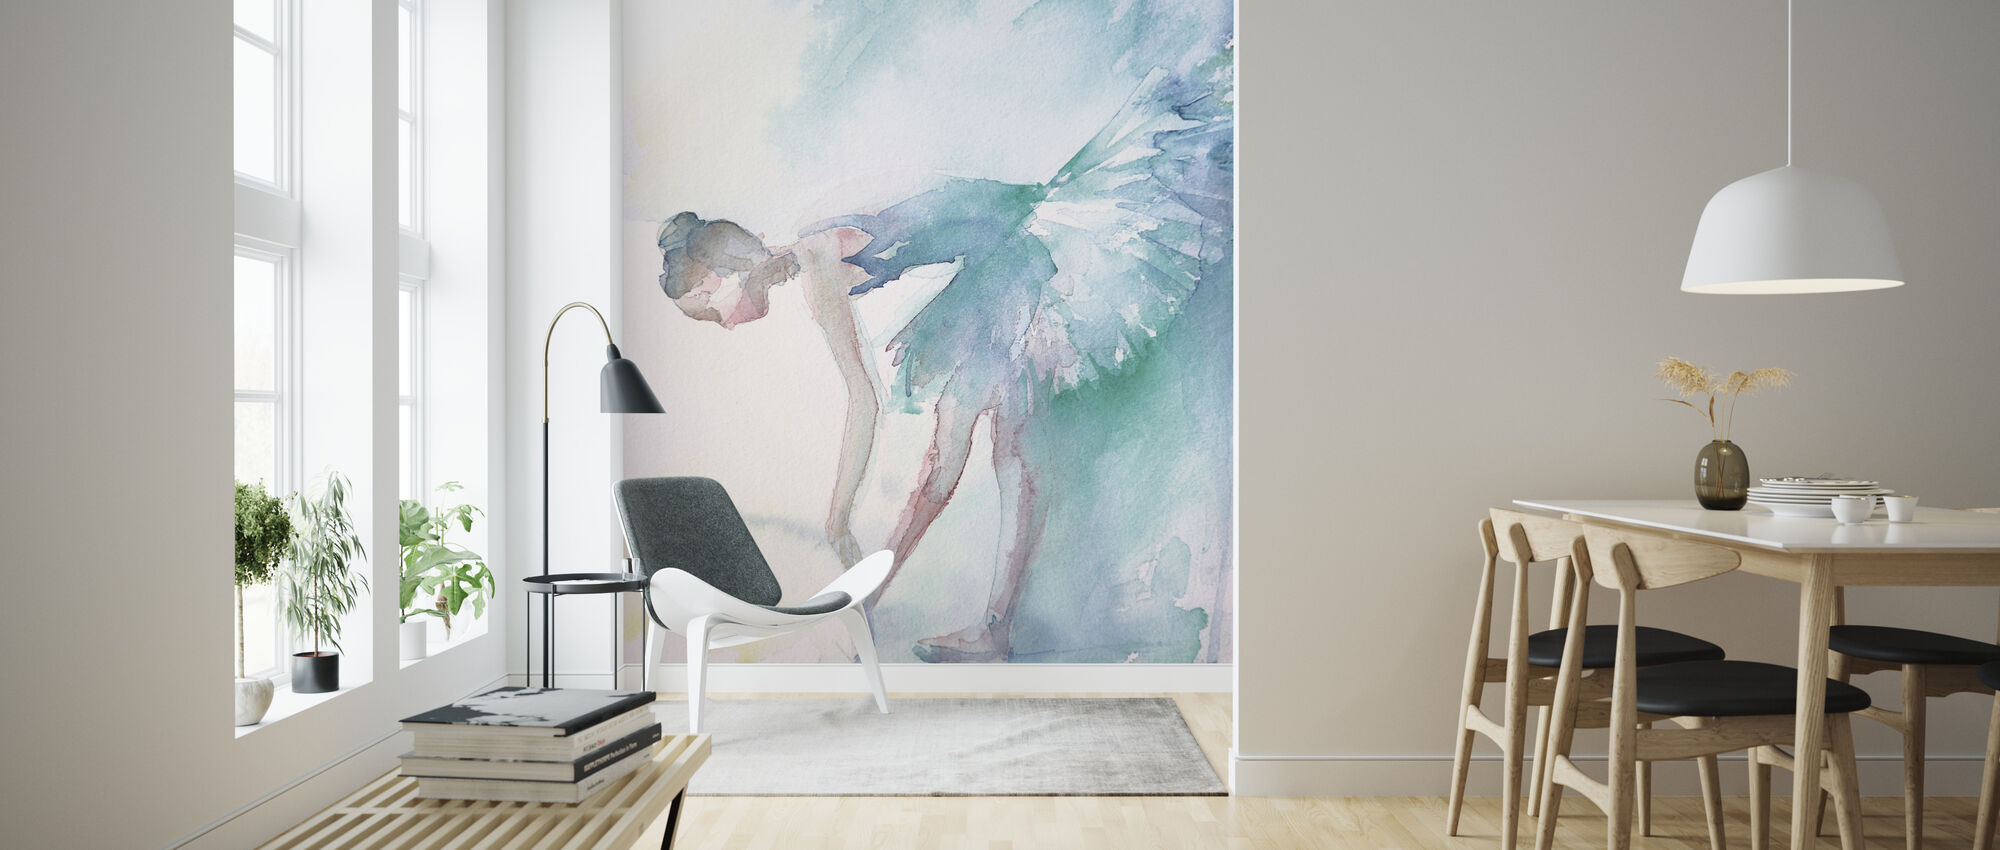 Pointe Shoes - Wallpaper - Living Room